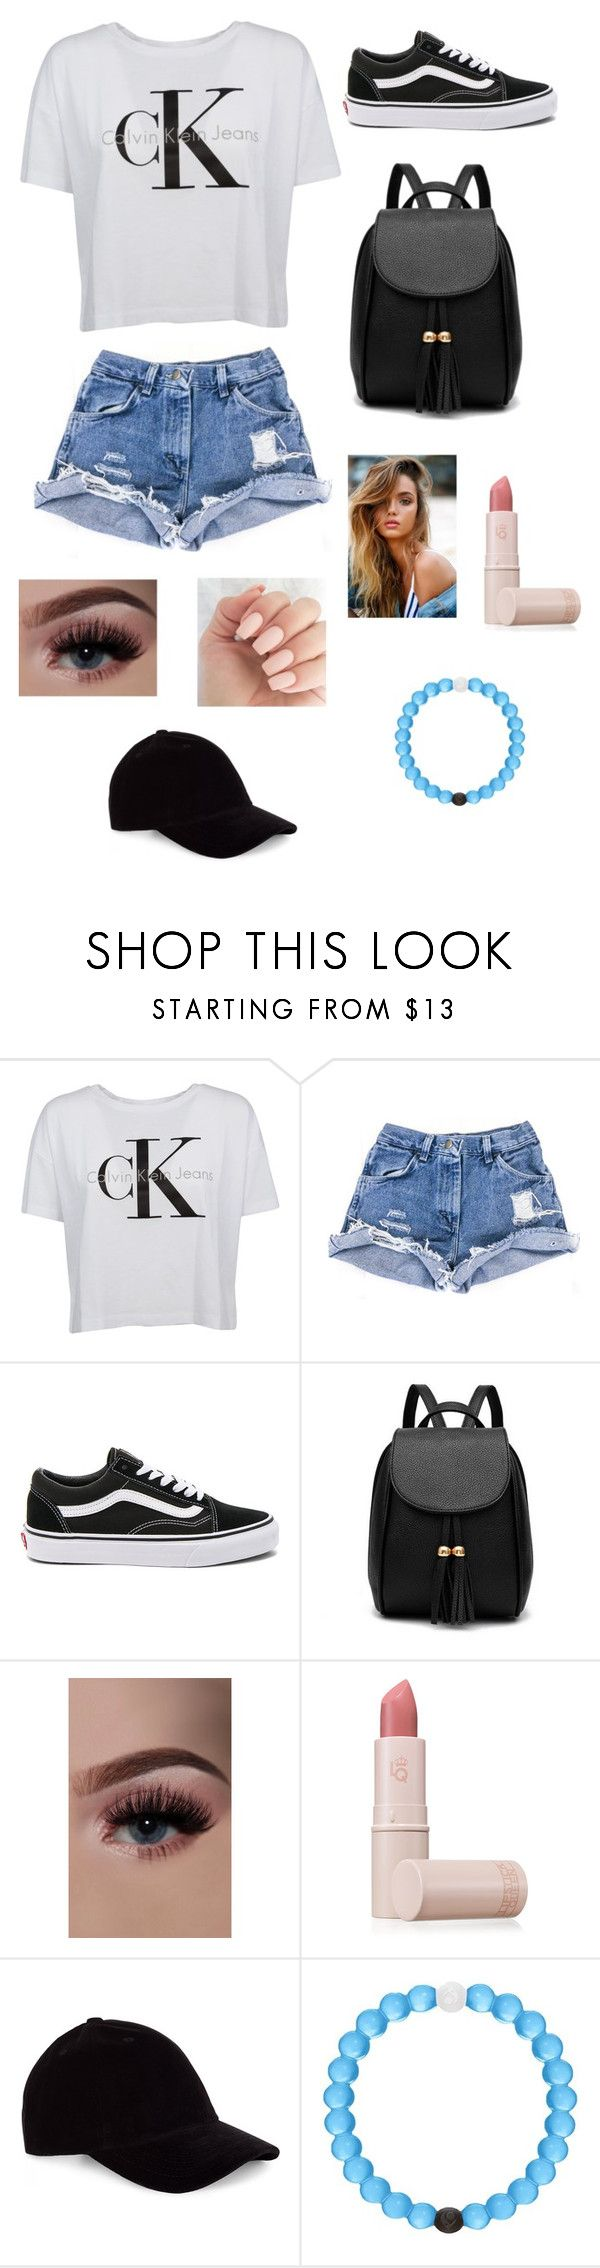 """""""Untitled #39"""" by lemonitadr on Polyvore featuring Calvin Klein, Vans, Lipstick Queen, Le Amonie and Lokai"""